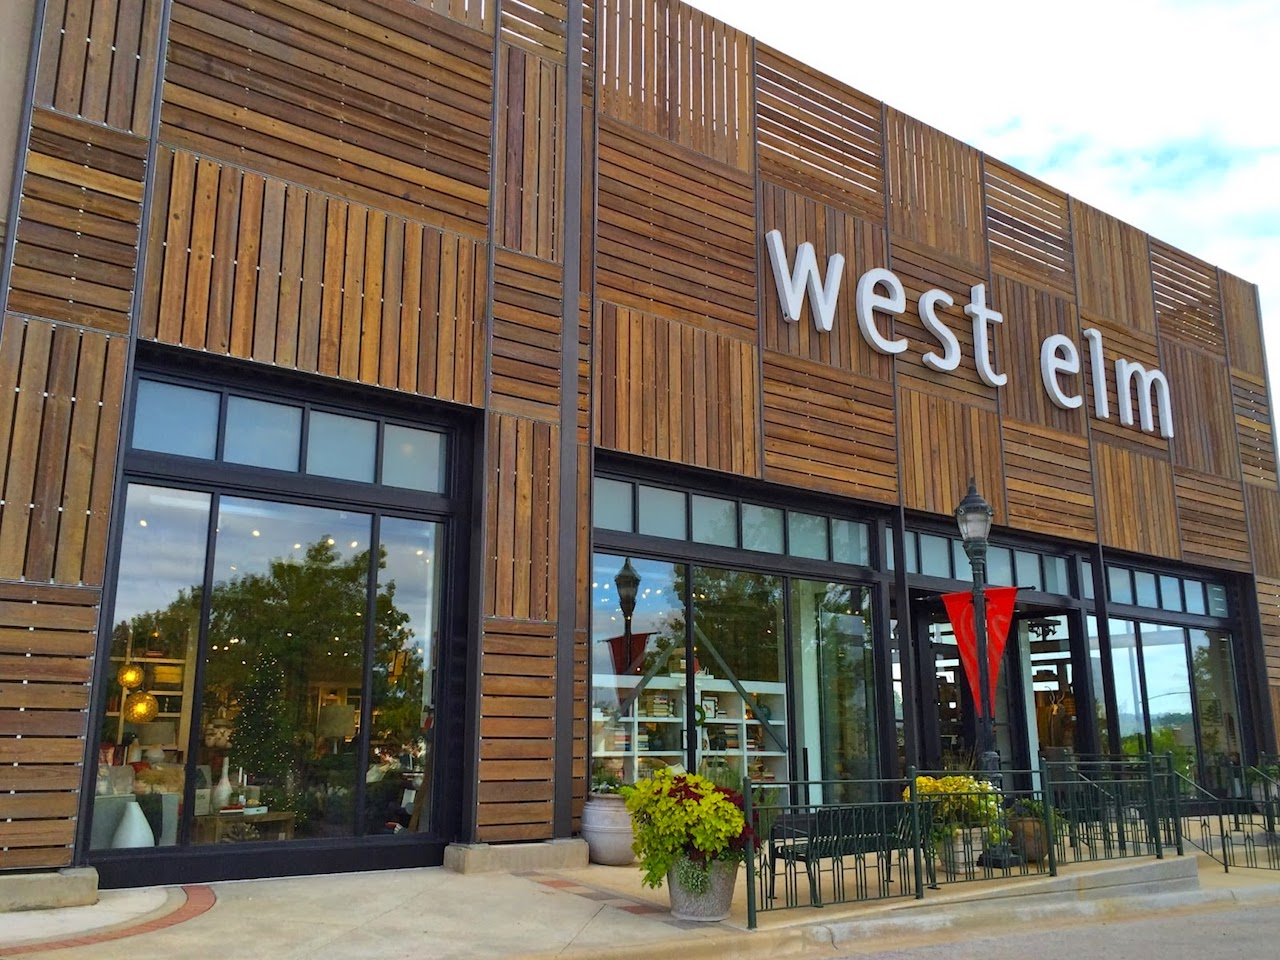 west elm partners with casper airbnb and others to drive local store